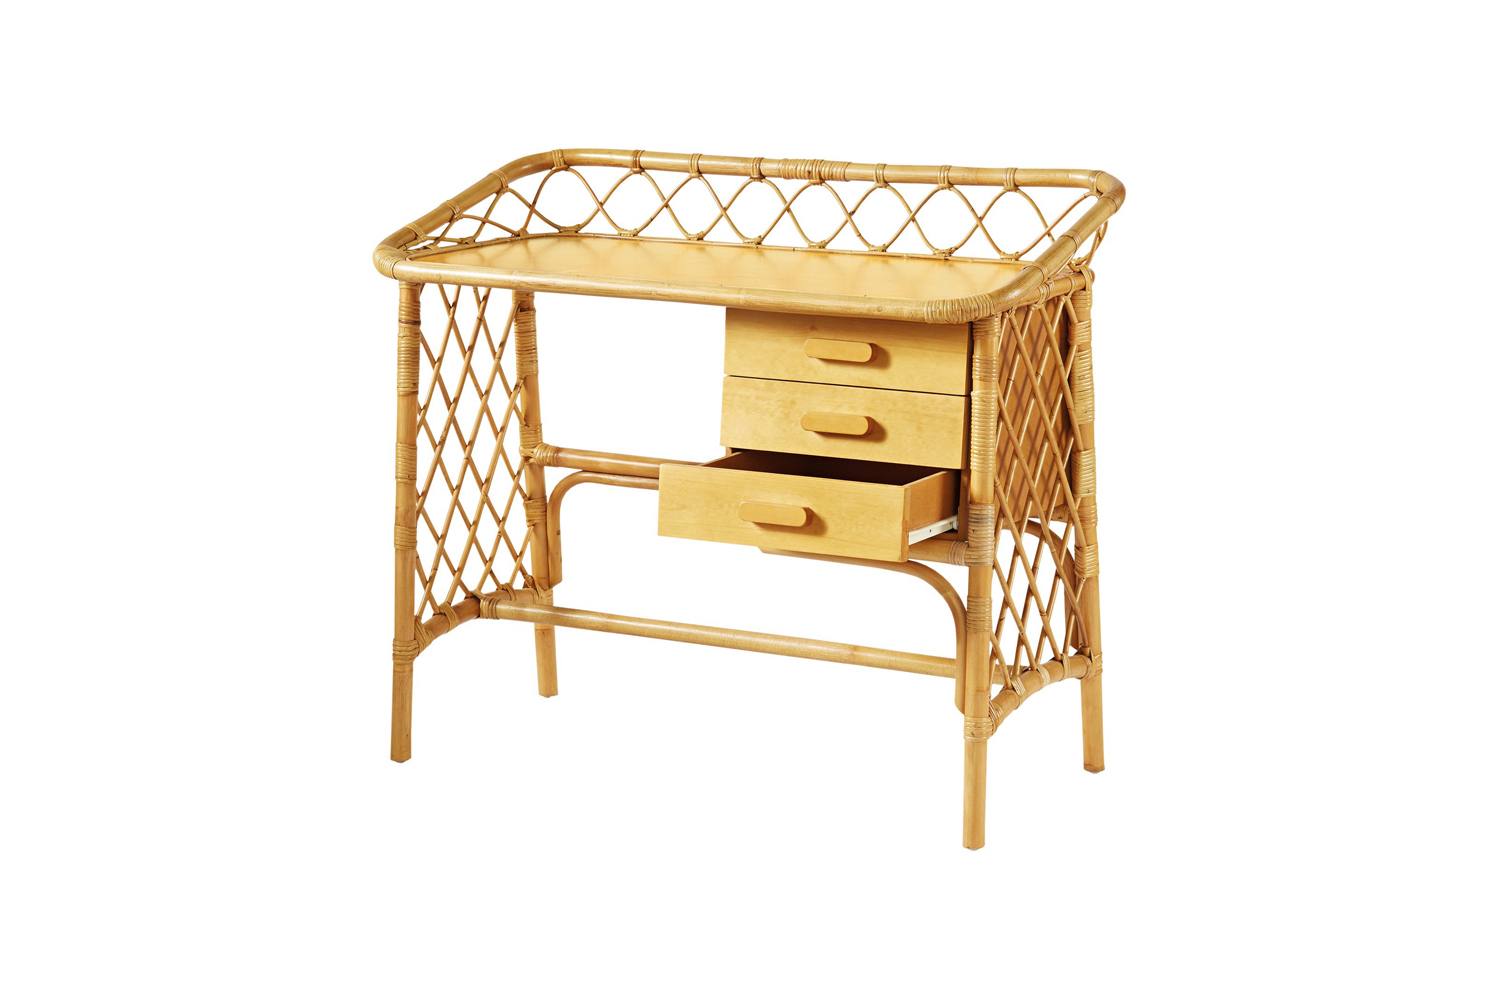 The Bohème Desk Natural from French brand Bonton is made in full rattan and finished with varnish; $463 at Smallable.